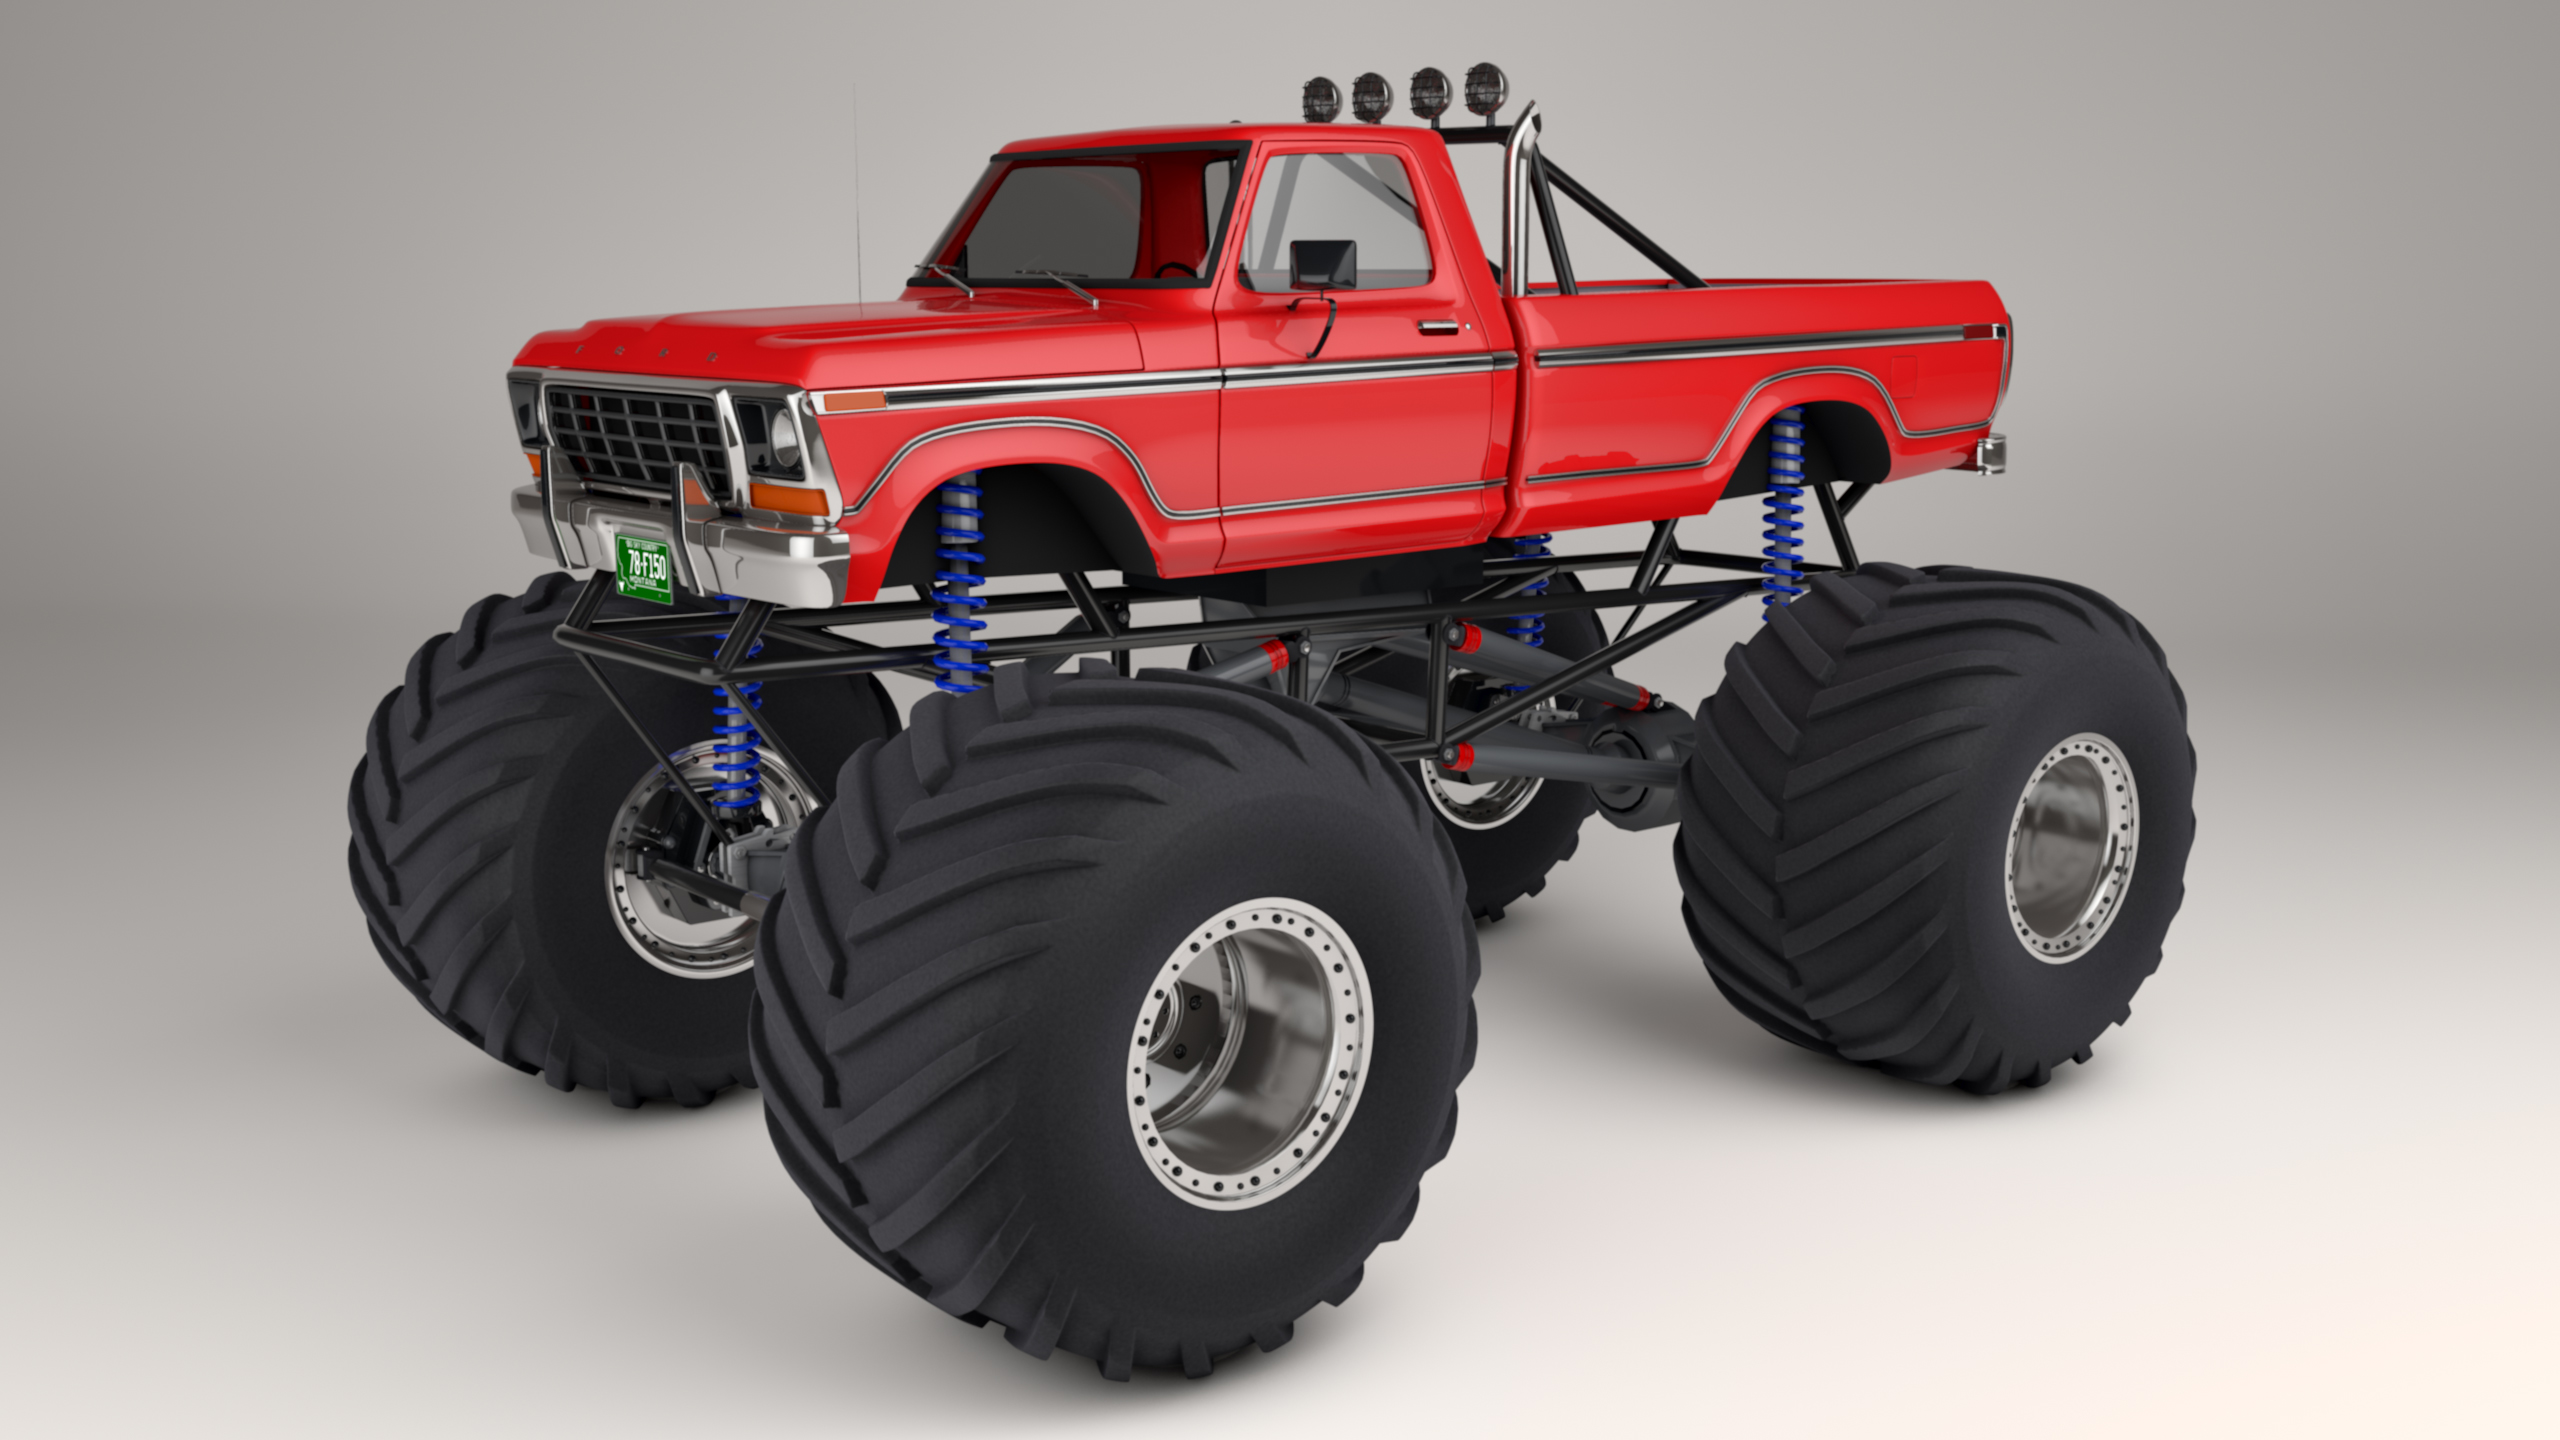 1978 ford f150 monster by samcurry 1978 ford f150 monster by samcurry